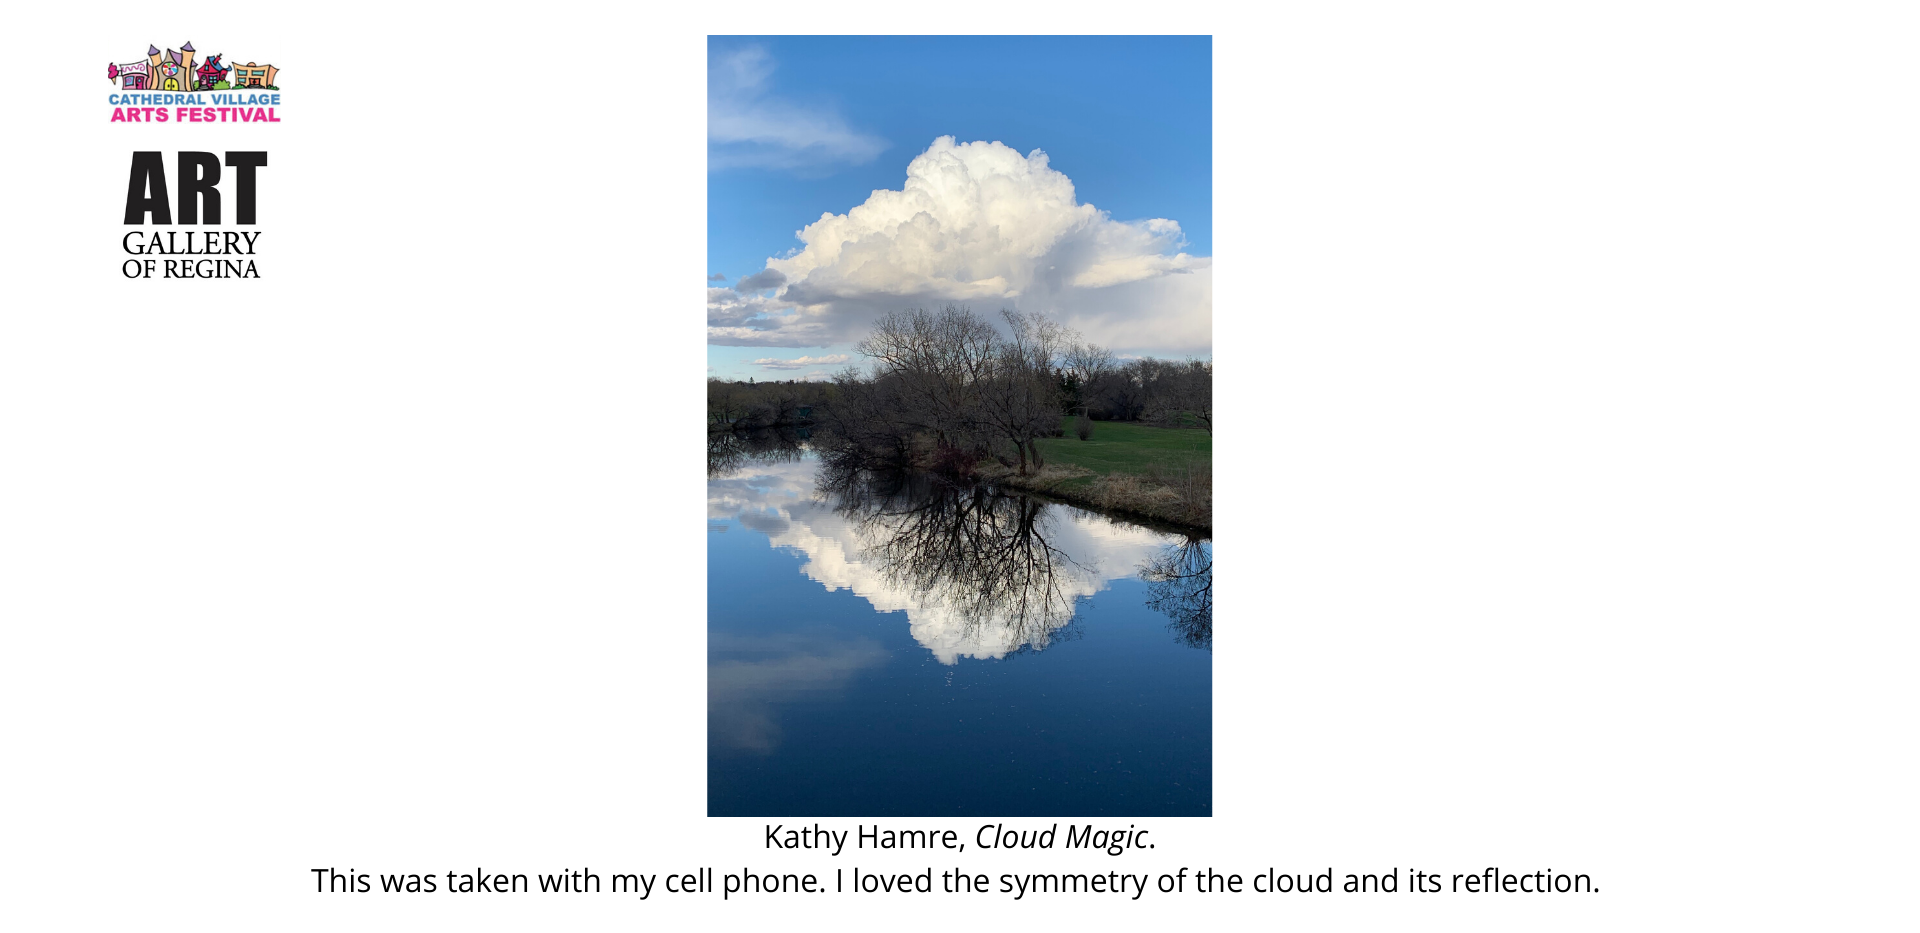 Kathy Hamre, Cloud Magic.